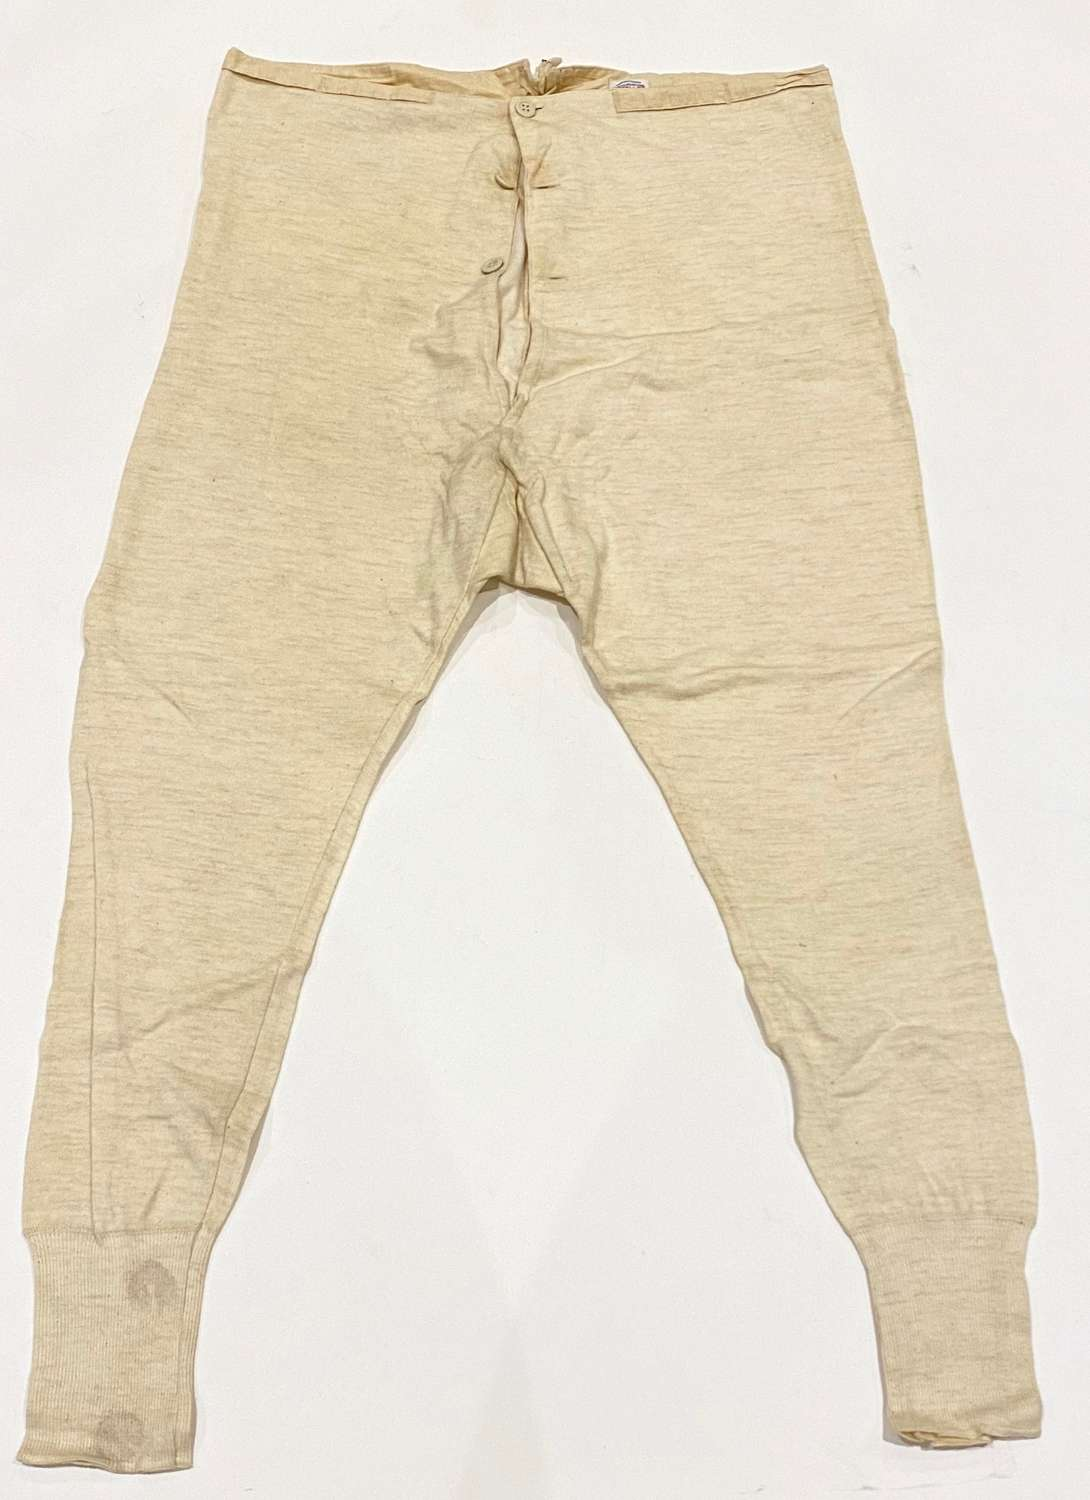 WW1 / WW2 Pattern Officer's Private Purchase Long Johns.